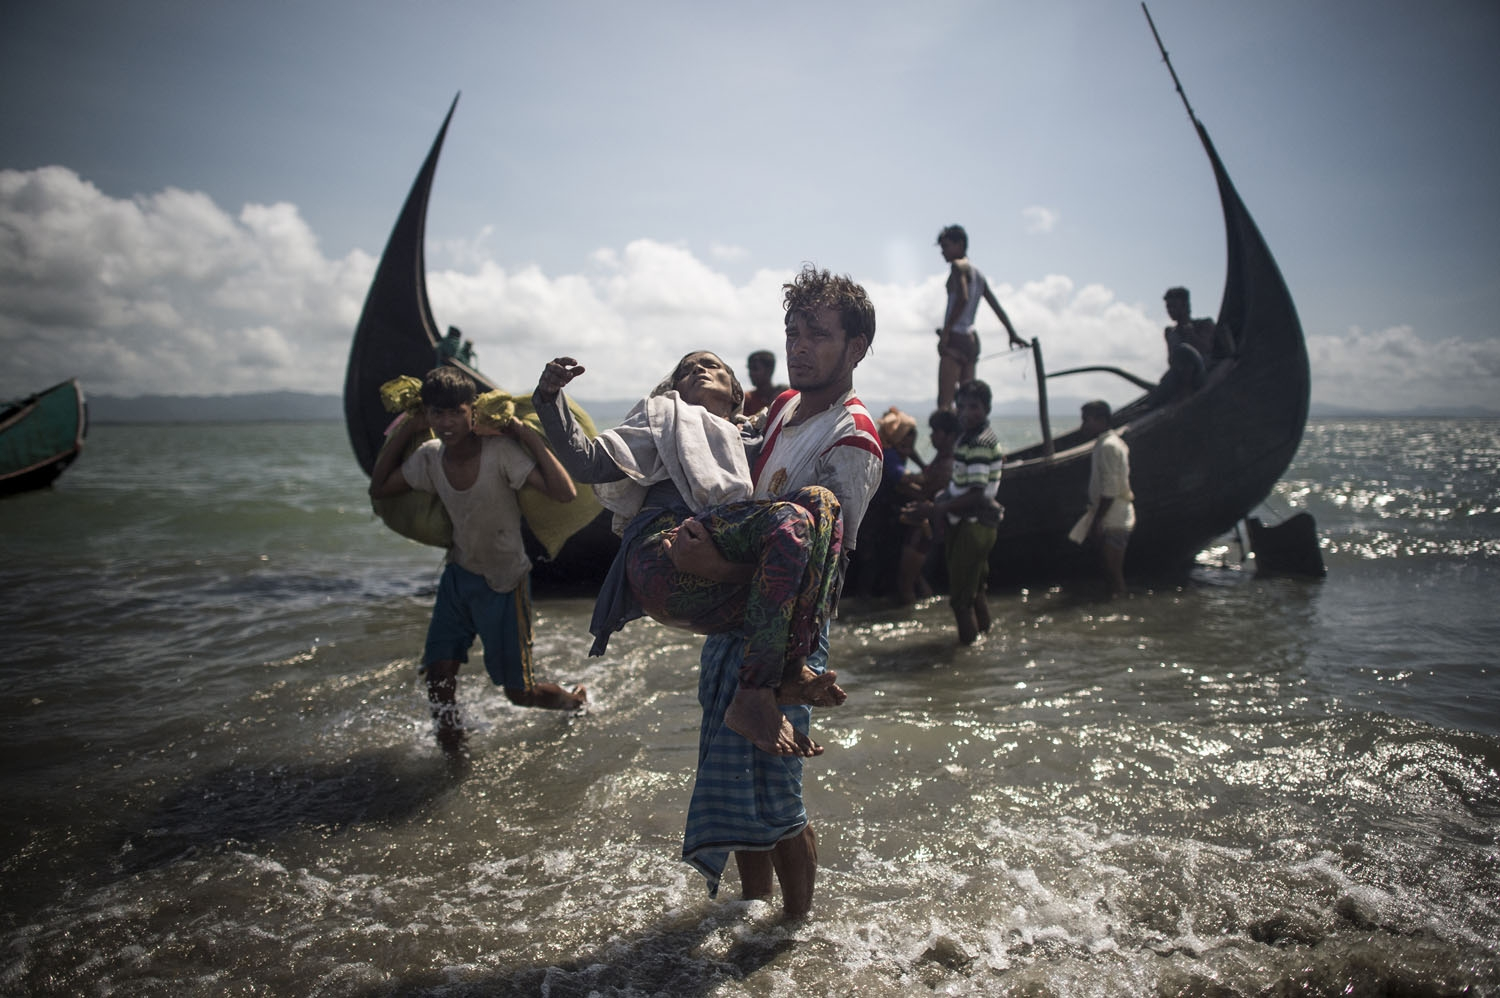 A Bangladeshi man helps Rohingya Muslim refugees to disembark from a boat on the Bangladeshi shoreline of the Naf river after crossing the border from Myanmar in Teknaf on September 30, 2017.